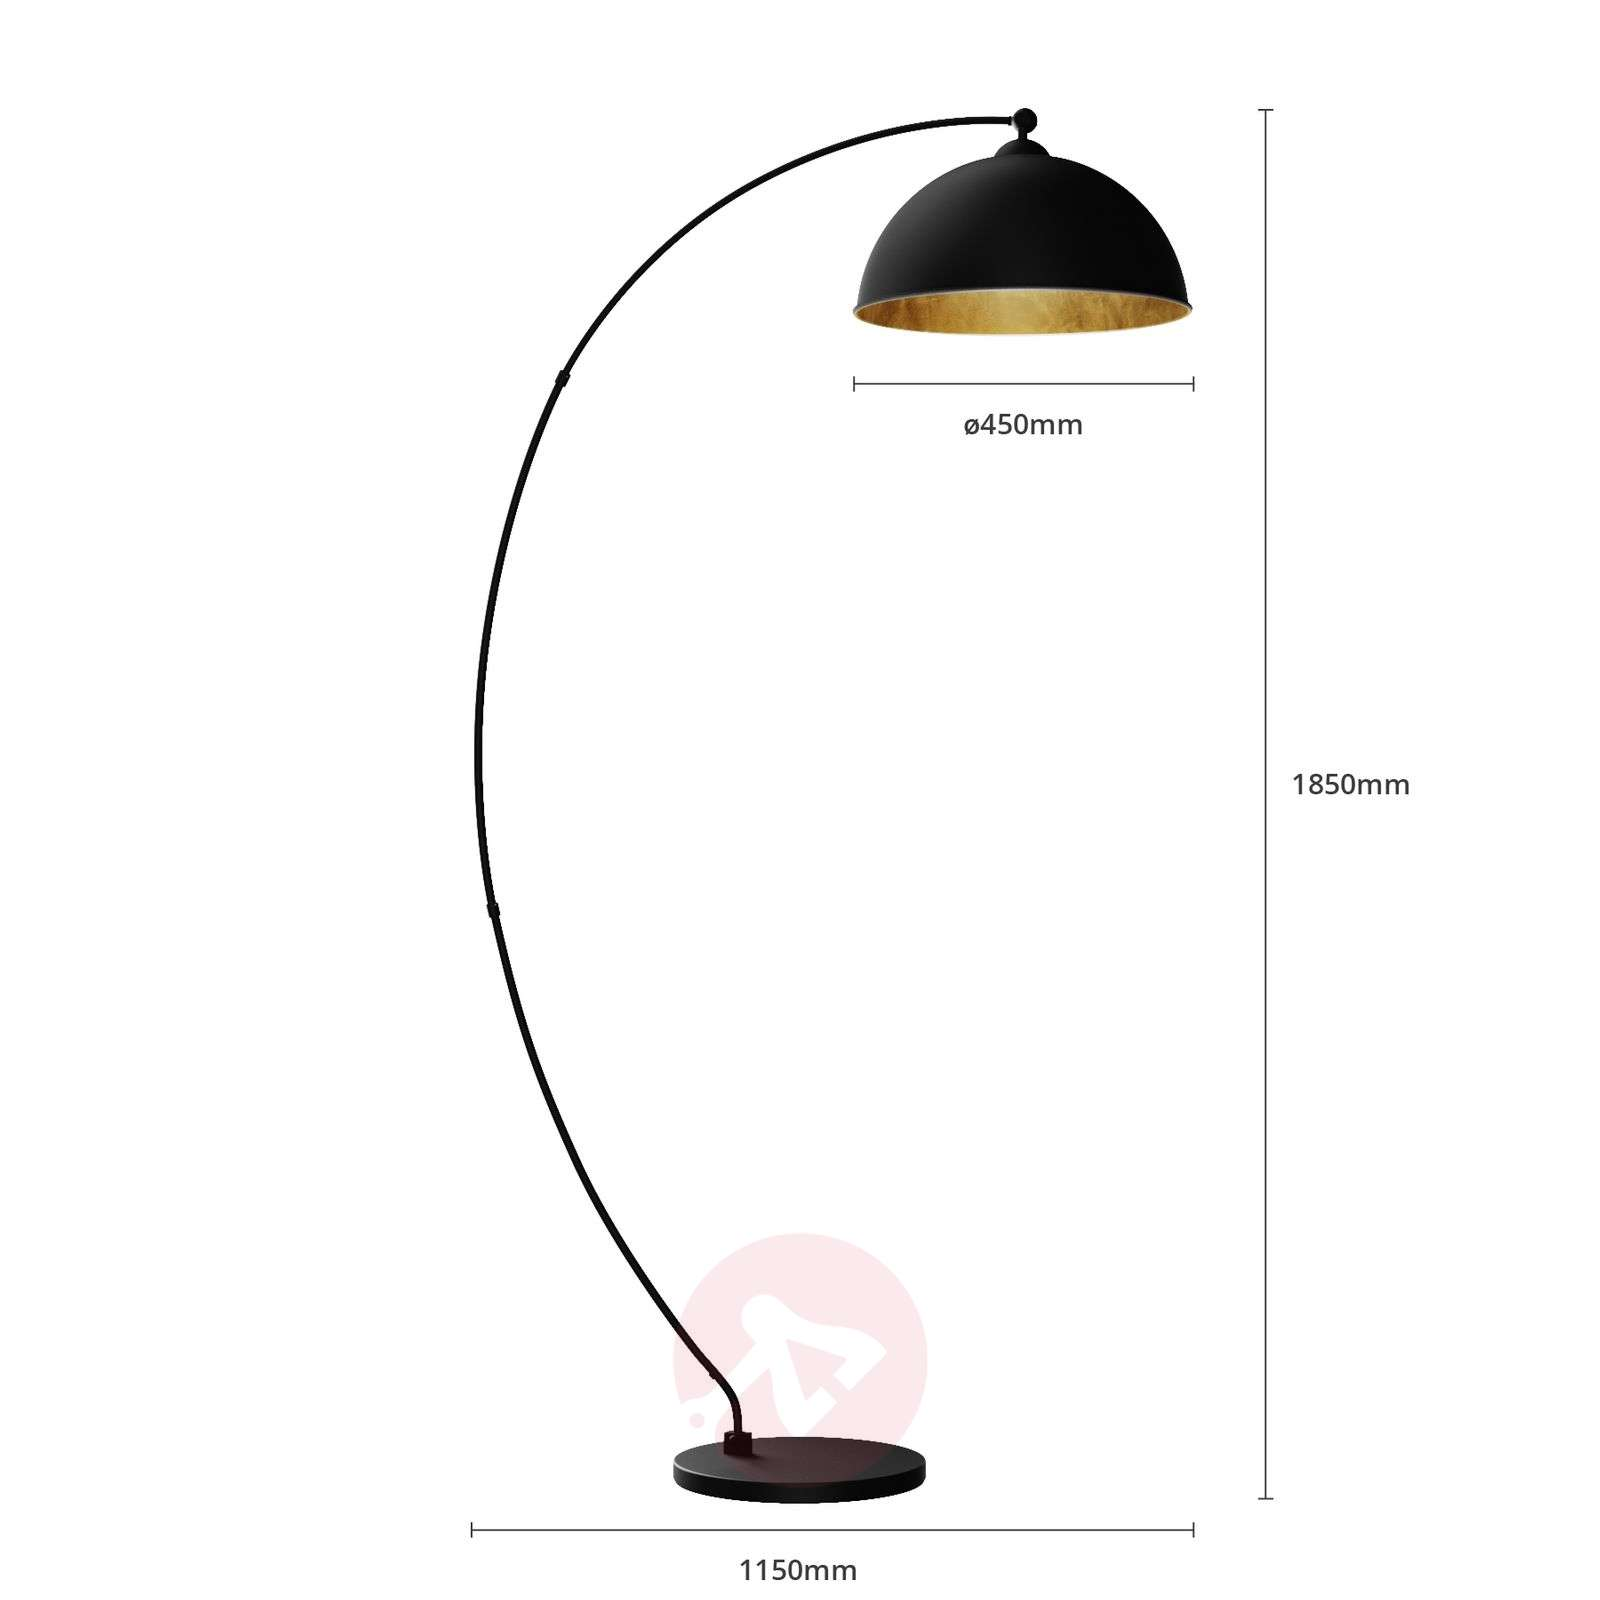 Curved floor lamp jonera black and gold lights curved floor lamp jonera black and gold 9621154 02 aloadofball Choice Image